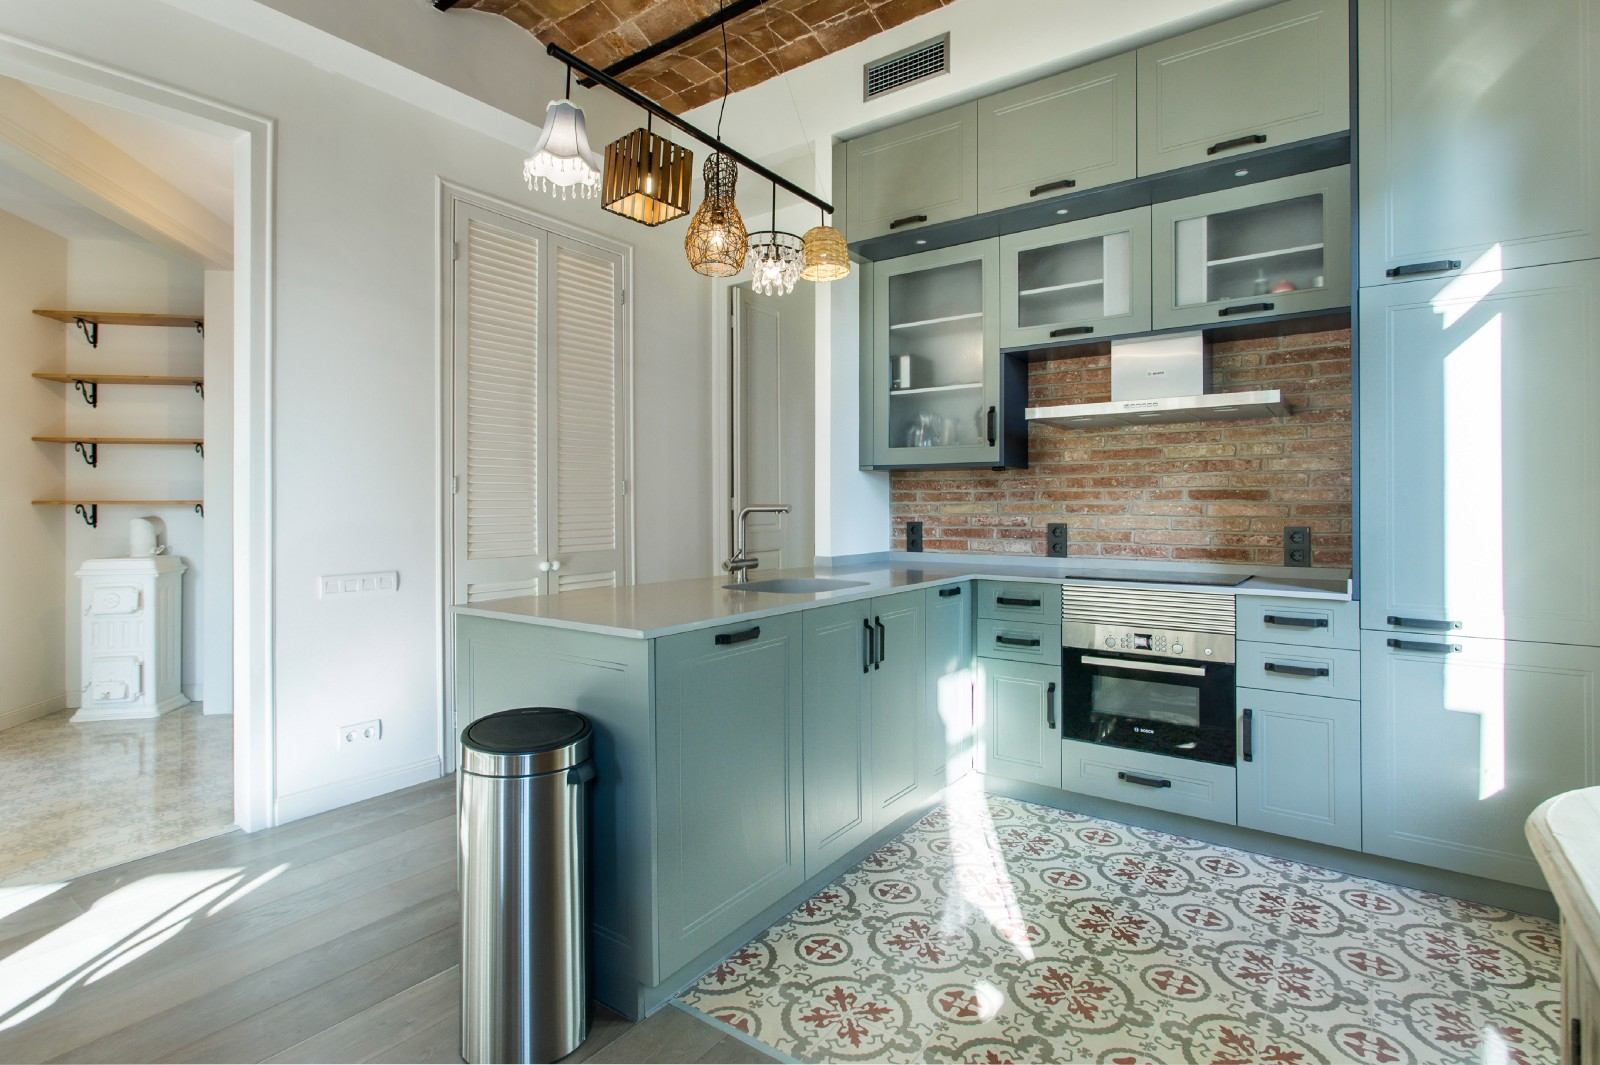 6 keys to renovating your kitchen in a minimalist style